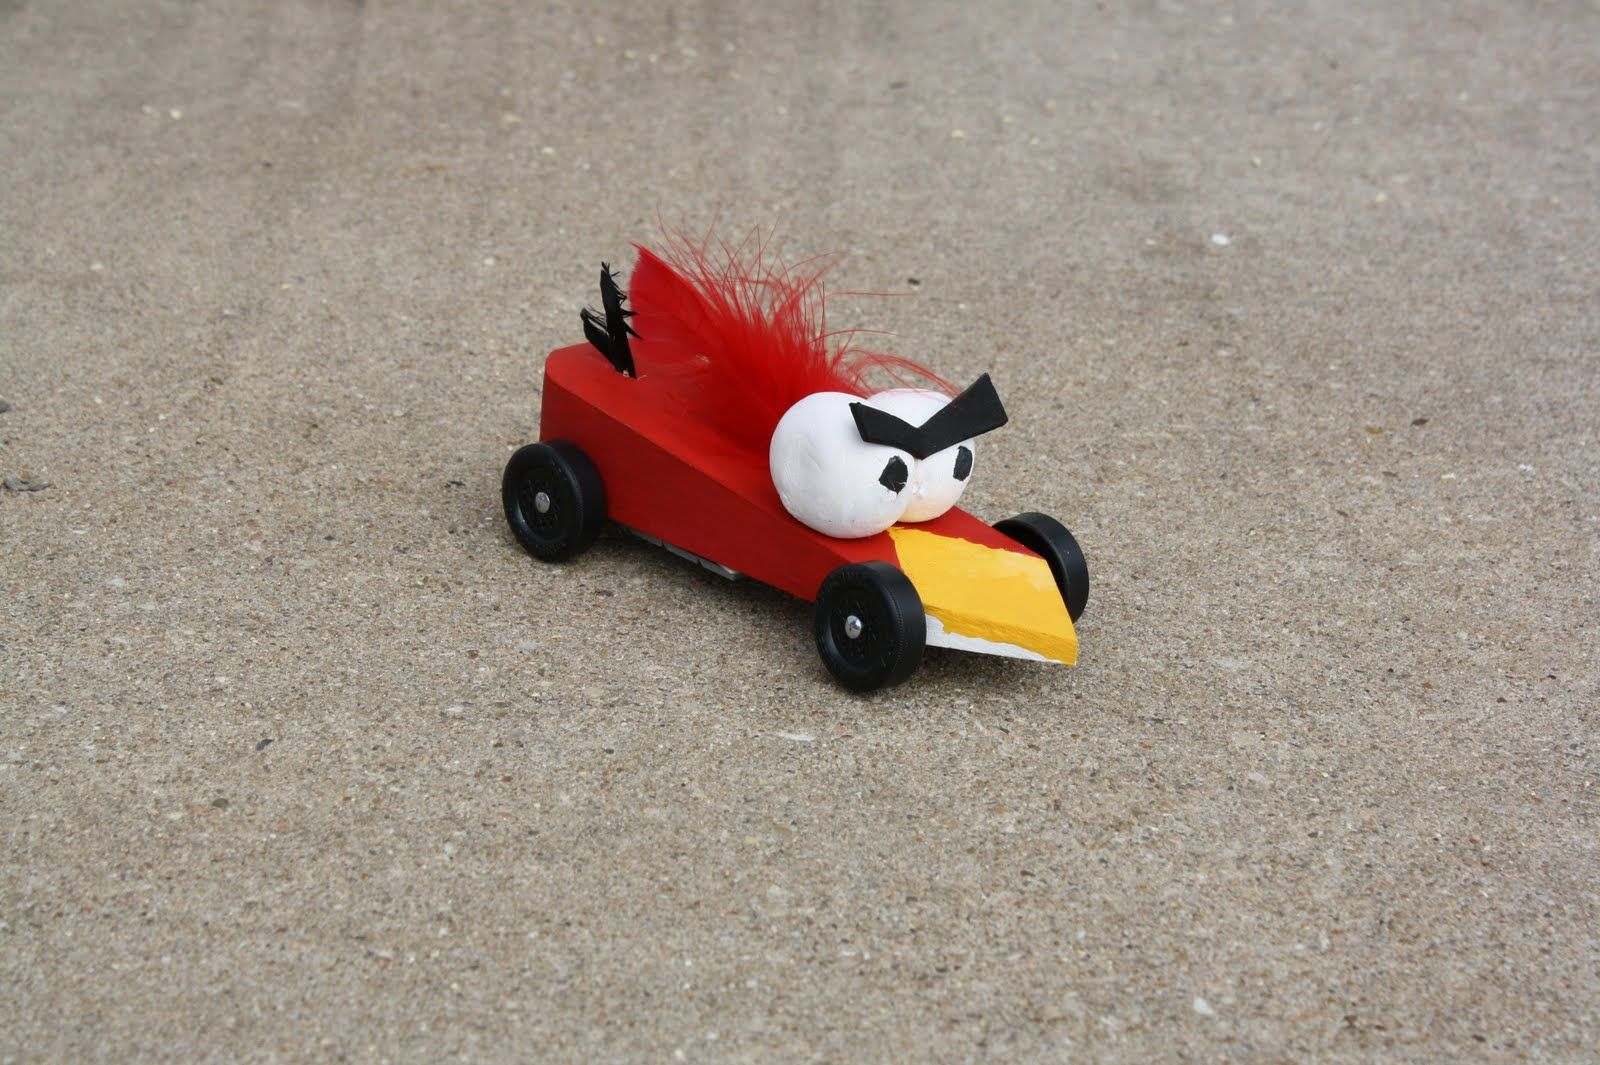 Winning Pinewood Derby Car Designs | Pinewood Derby: Angry Birds ...